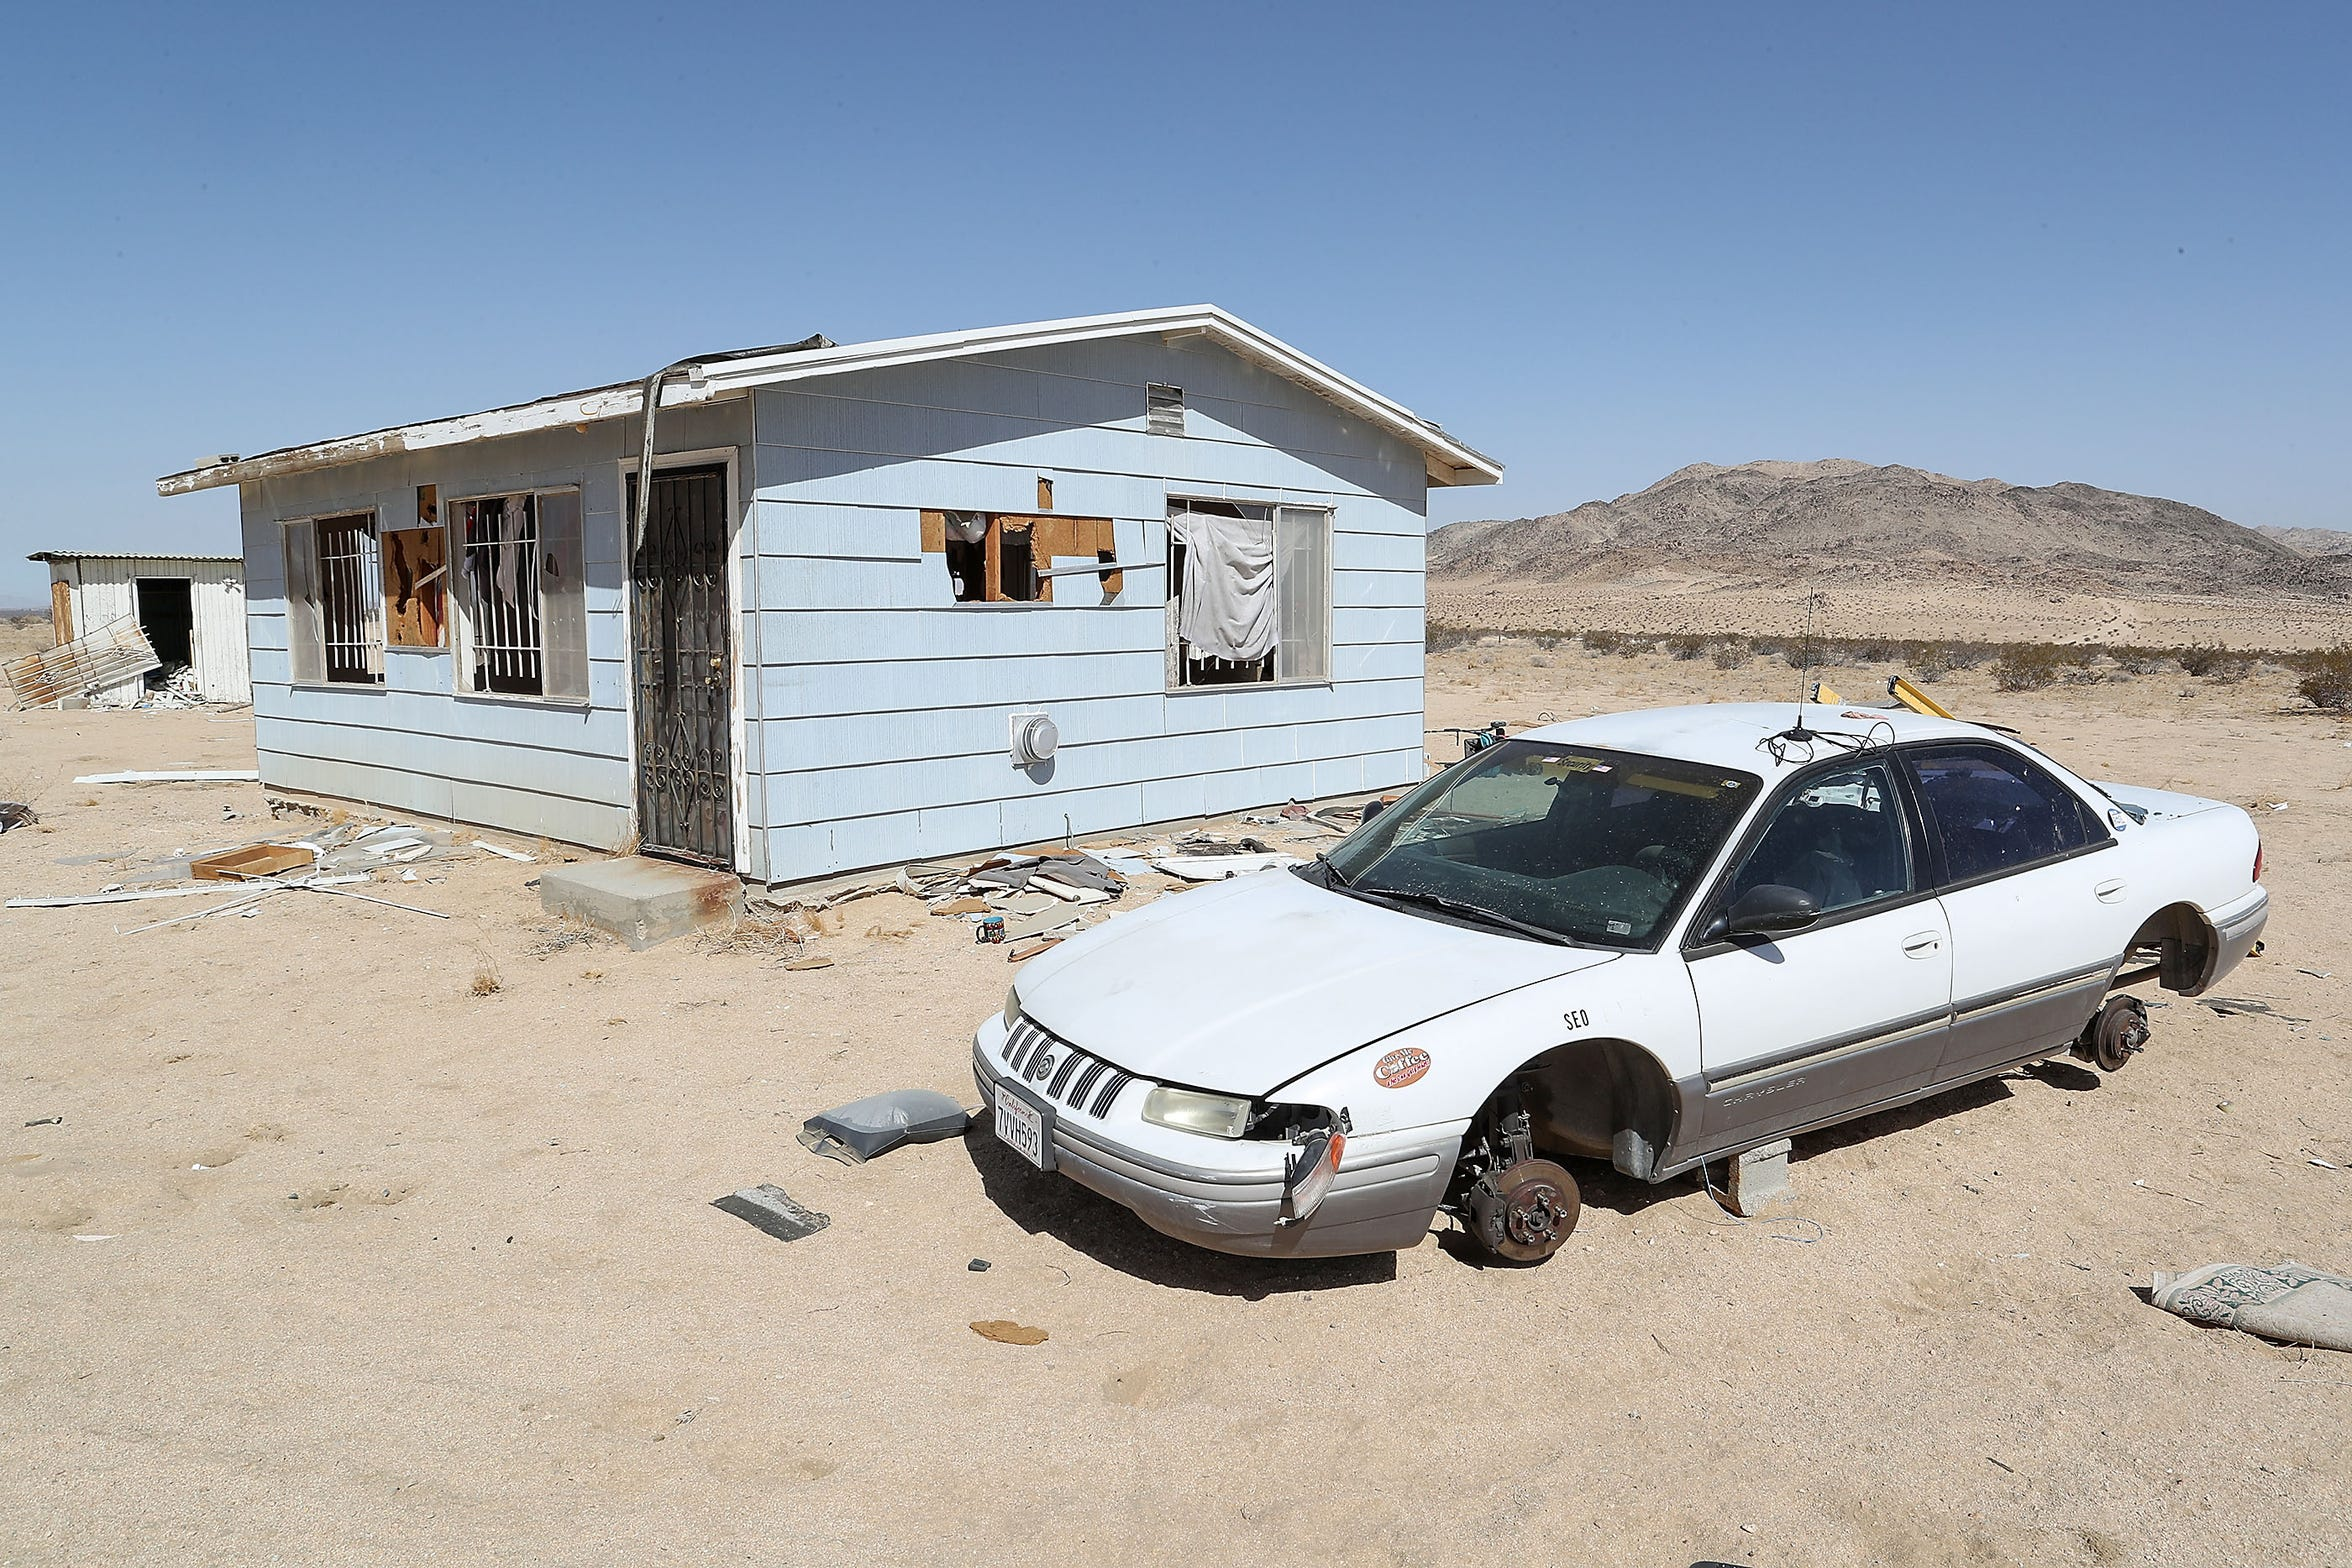 Paul and Misty Warfox were living in this remote abandoned home on Boone Rd in Landers, California when one of their children died under suspicious circumstances.